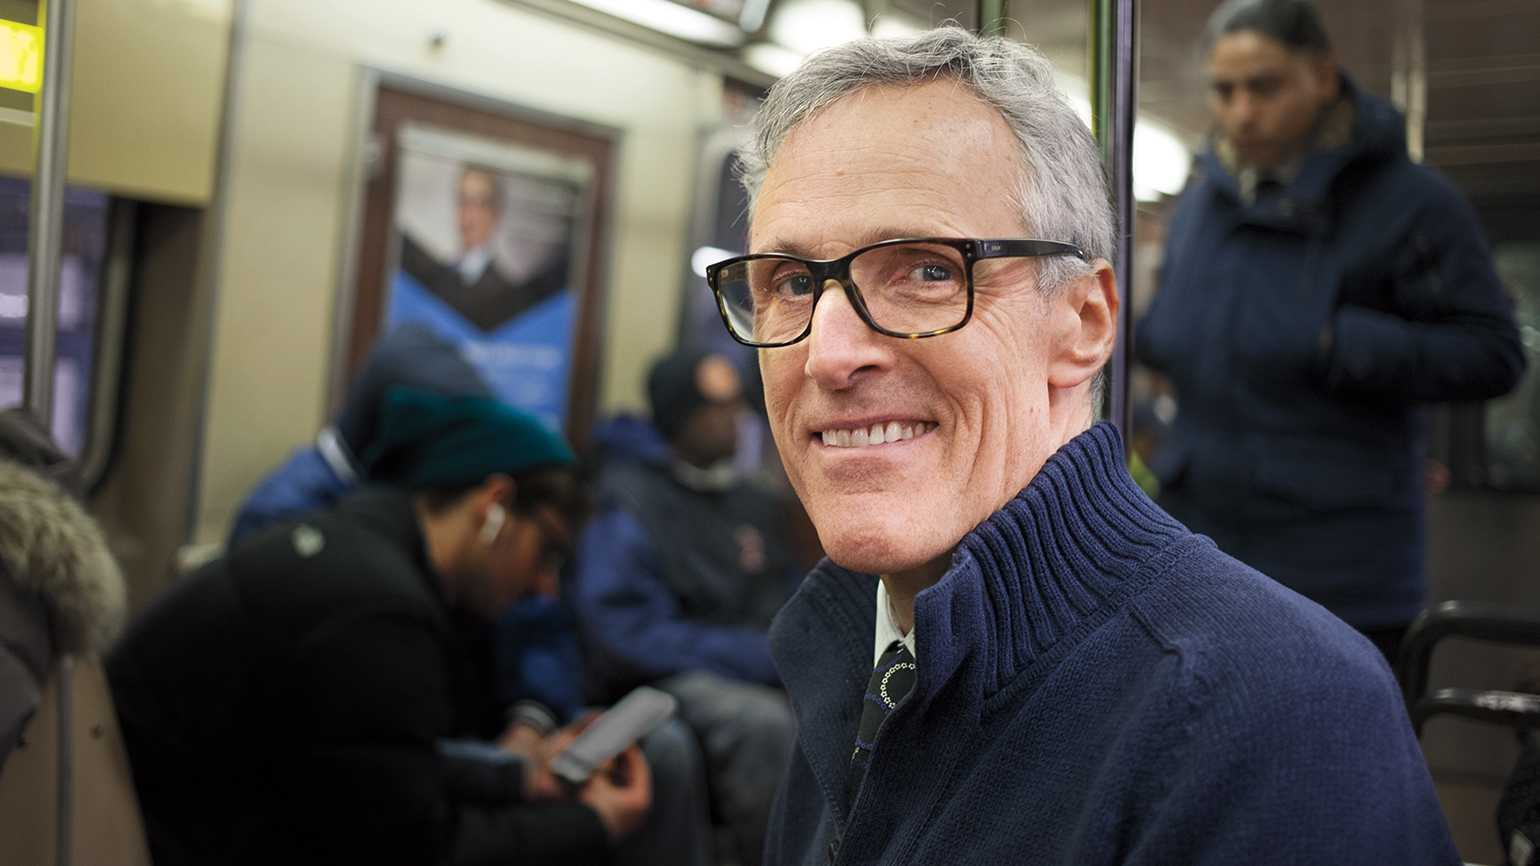 Rick Hamlin on the downtown A train